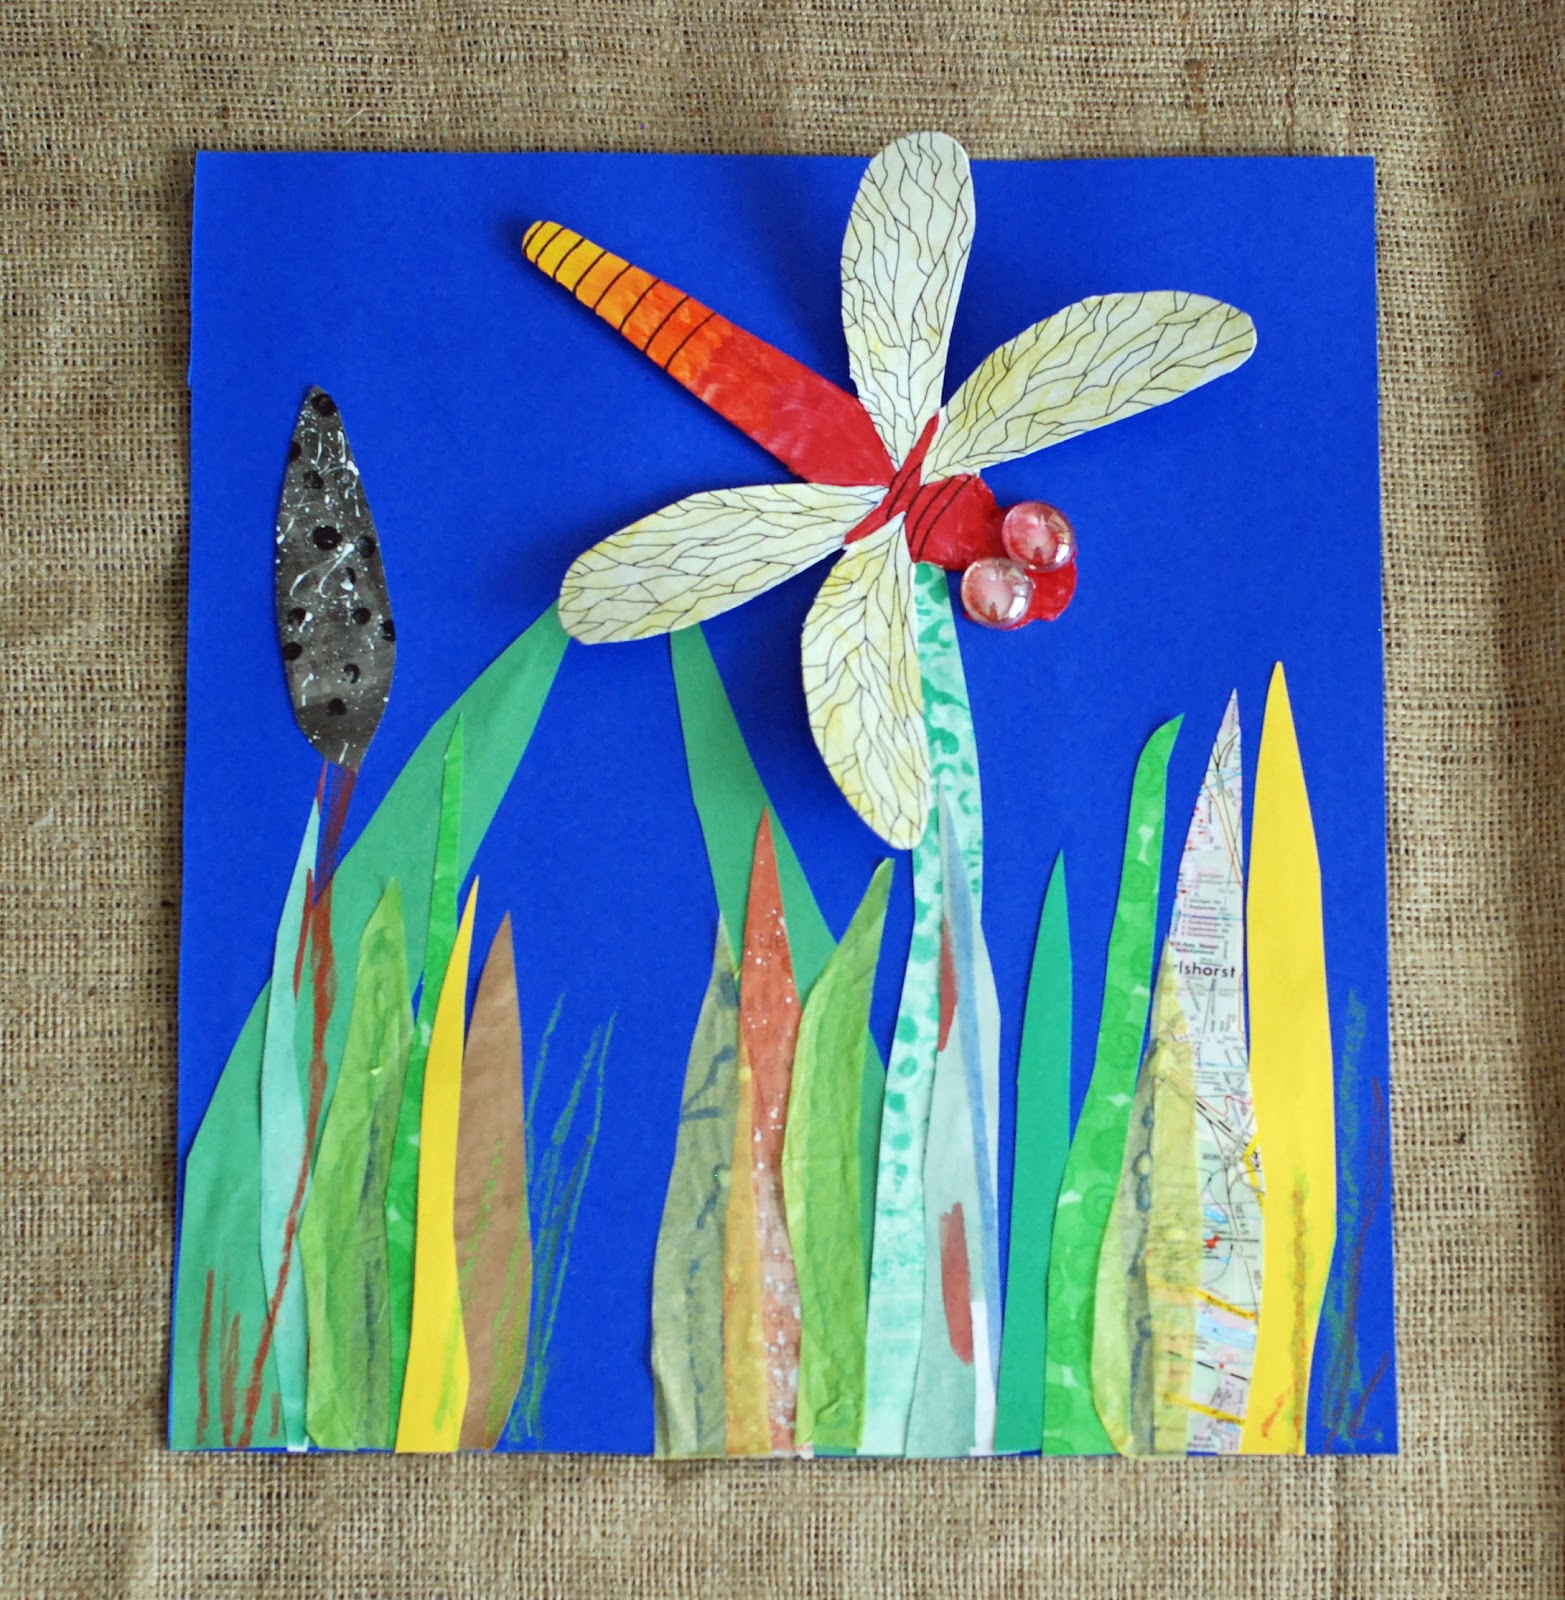 Dragonfly arts and crafts - Dragonfly Arts And Crafts 12